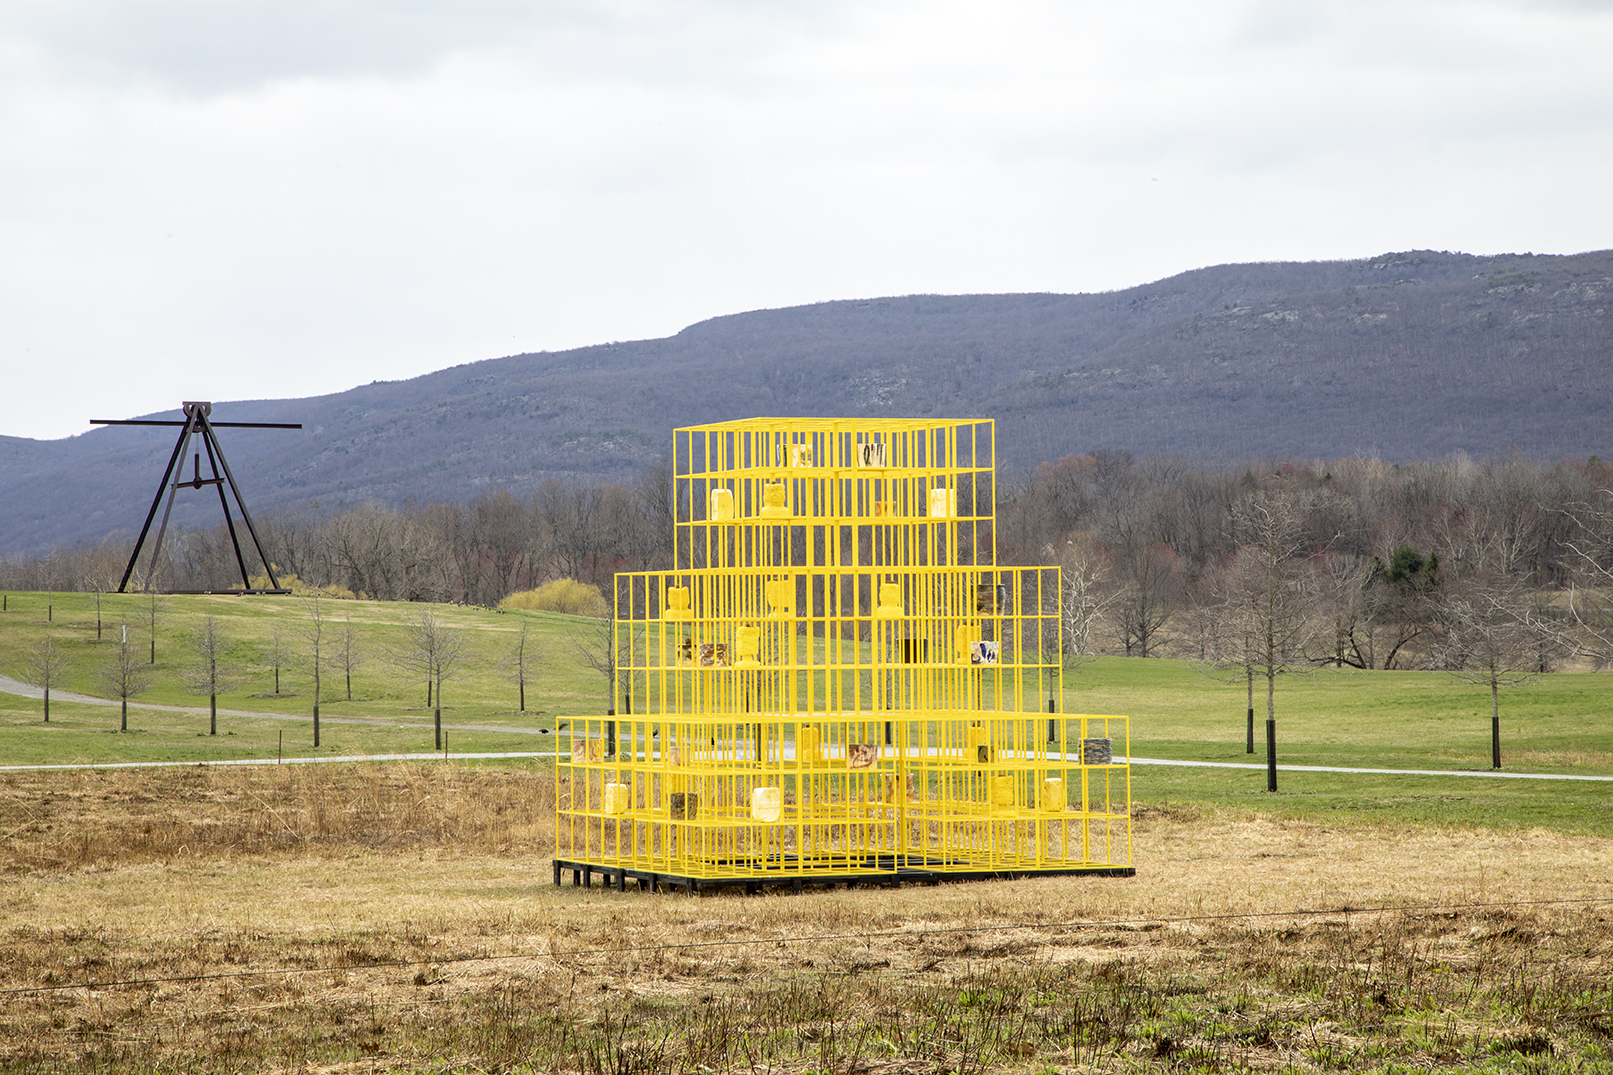 Rashid Johnson, The Crisis (2019). Courtesy of the artist and Hauser & Wirth. Photo: Stephanie Powell. Courtesy of Storm King Art Center